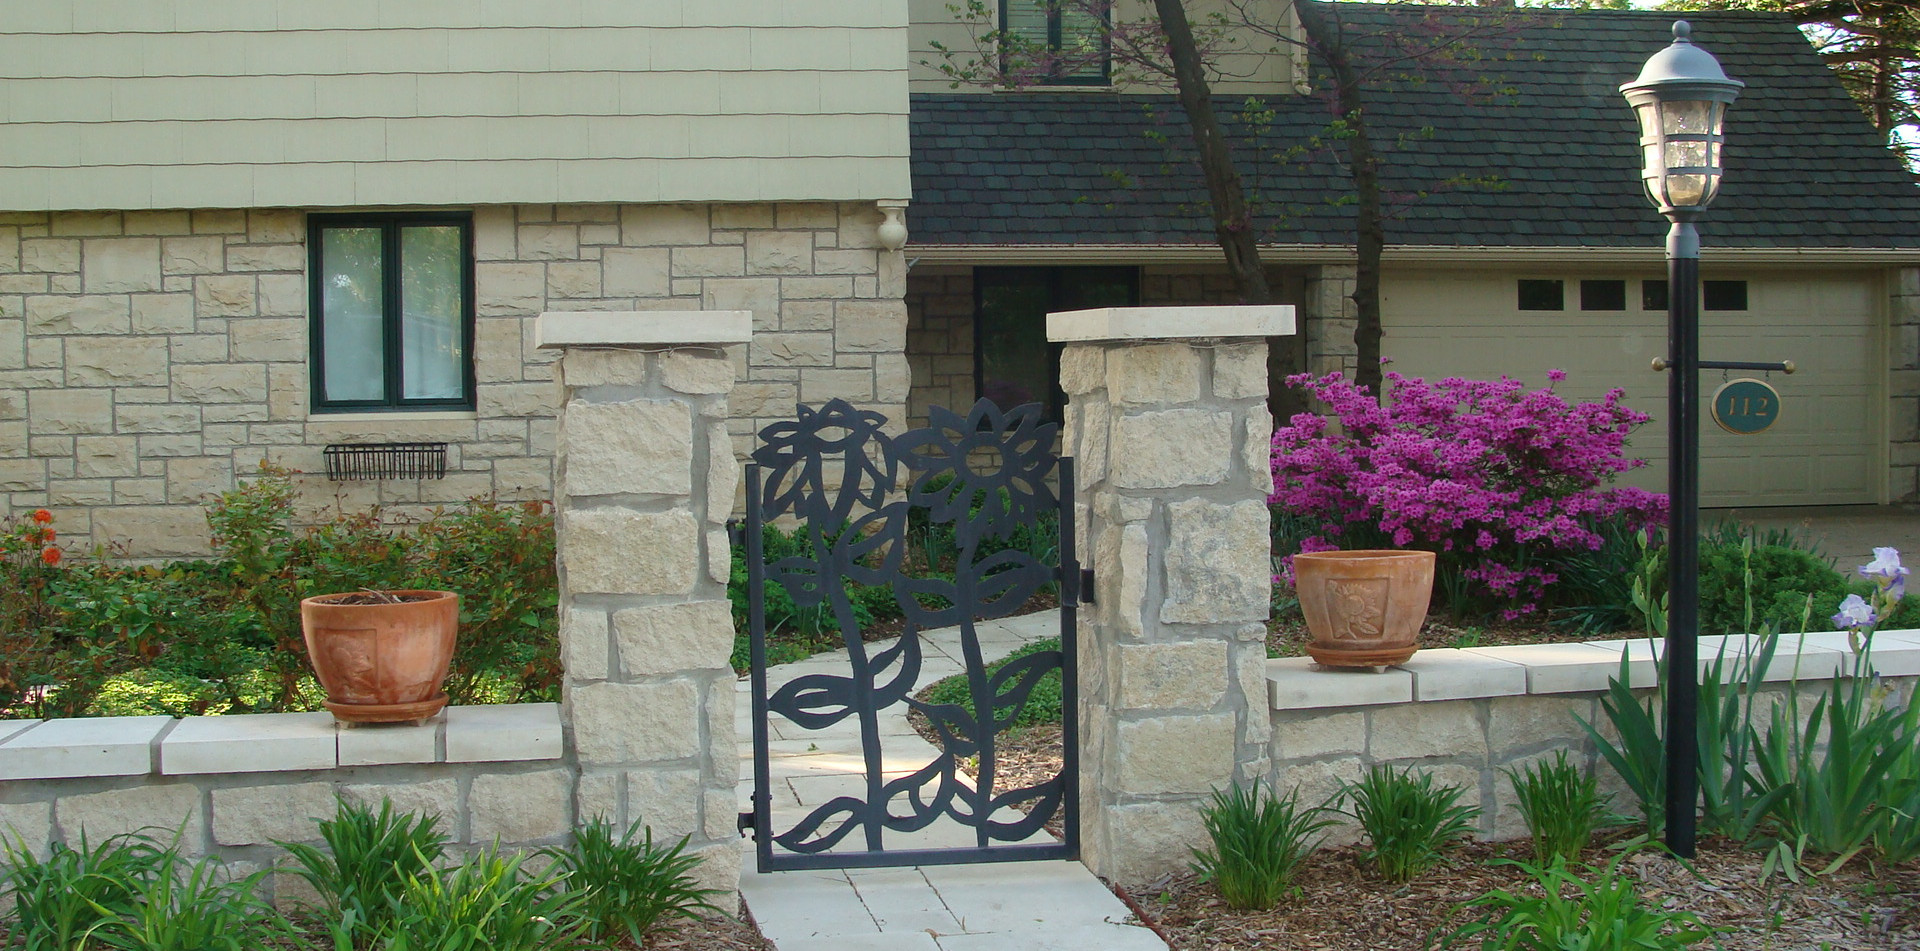 Unique Gate, Master Landscape, Inc.